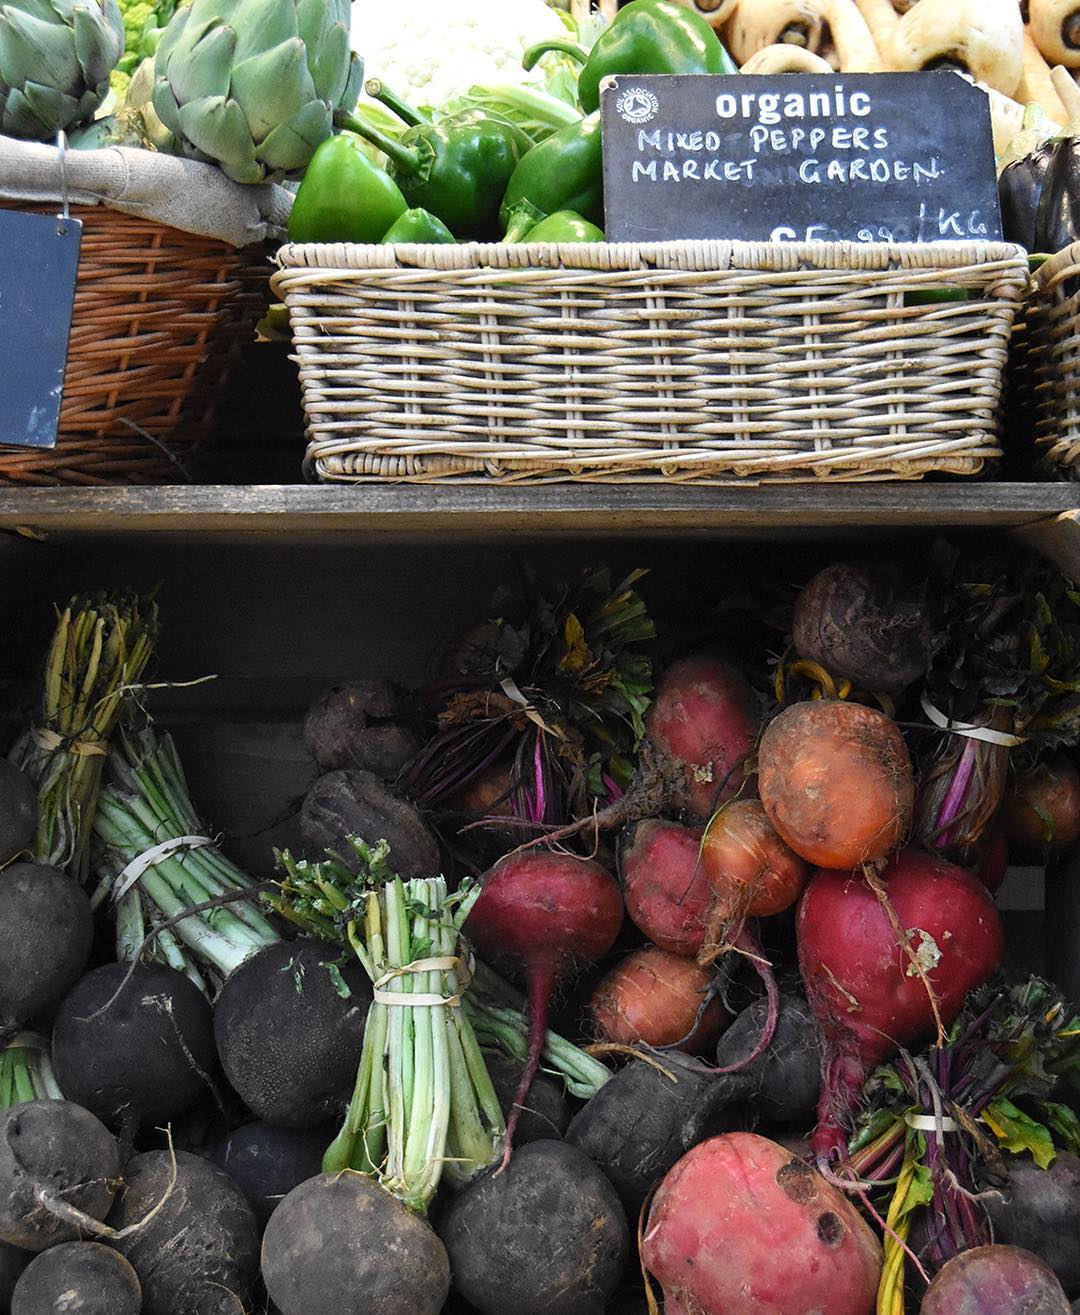 A fresh harvest from our Market Garden at @daylesfordfarm including our wonderfully peppery black radishes. I love them raw in salads with apples a thick Dijon dressing - delicious when roasted & tossed with a little miso, honey and butter too #eattobehealthy #nourish #eatwiththeseasons #nurture #Daylesford 